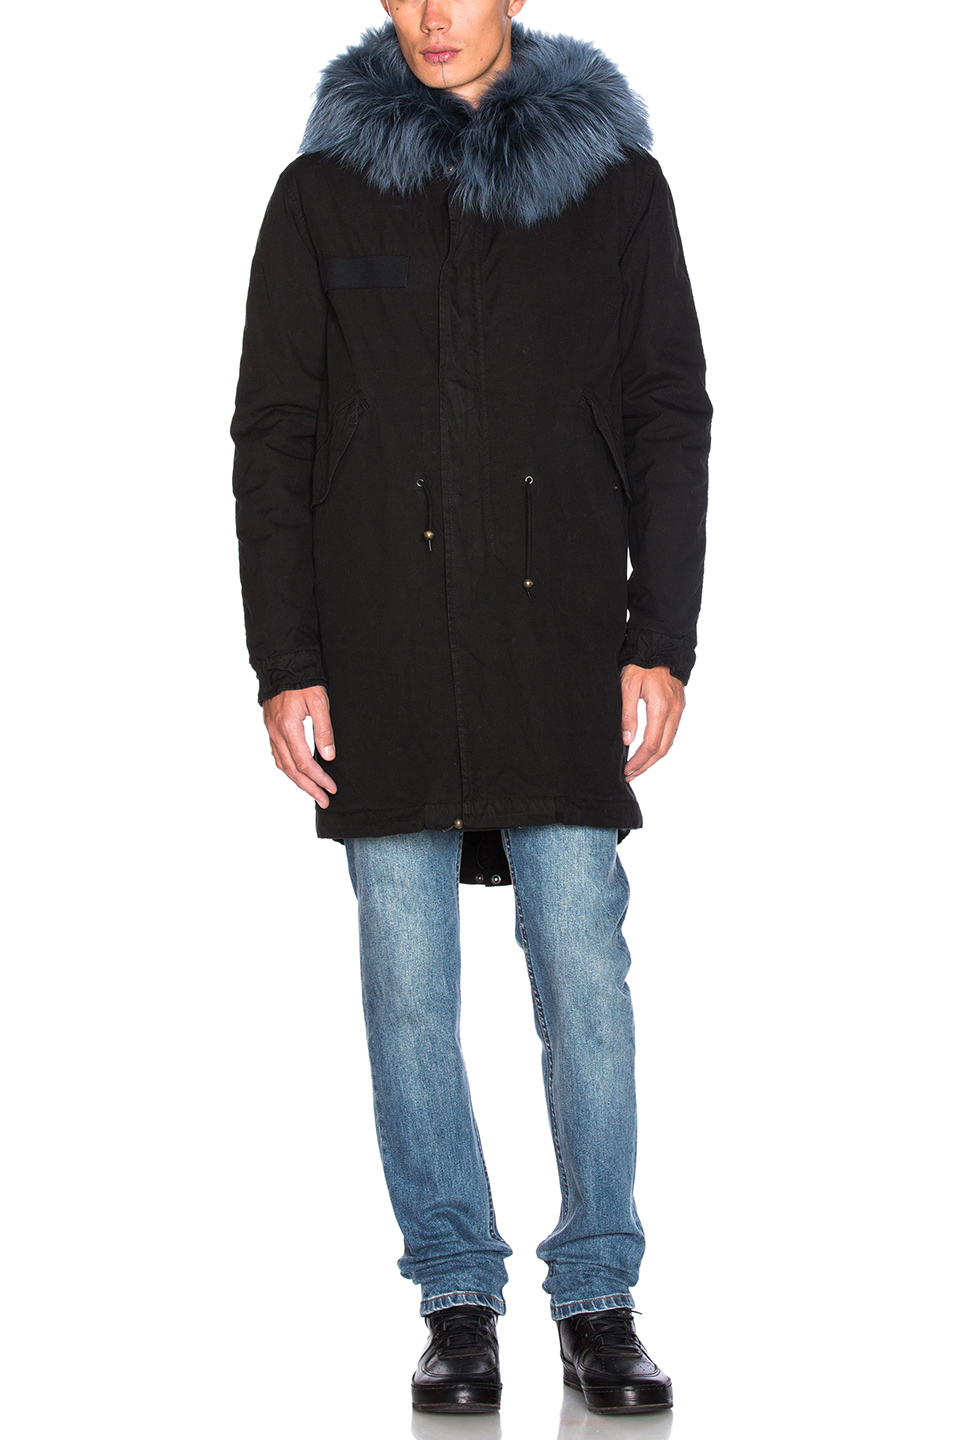 Photo of Mr & Mrs Italy Canvas Parka With Rabbit Fur in Black - shop Mr & Mrs Italy menswear